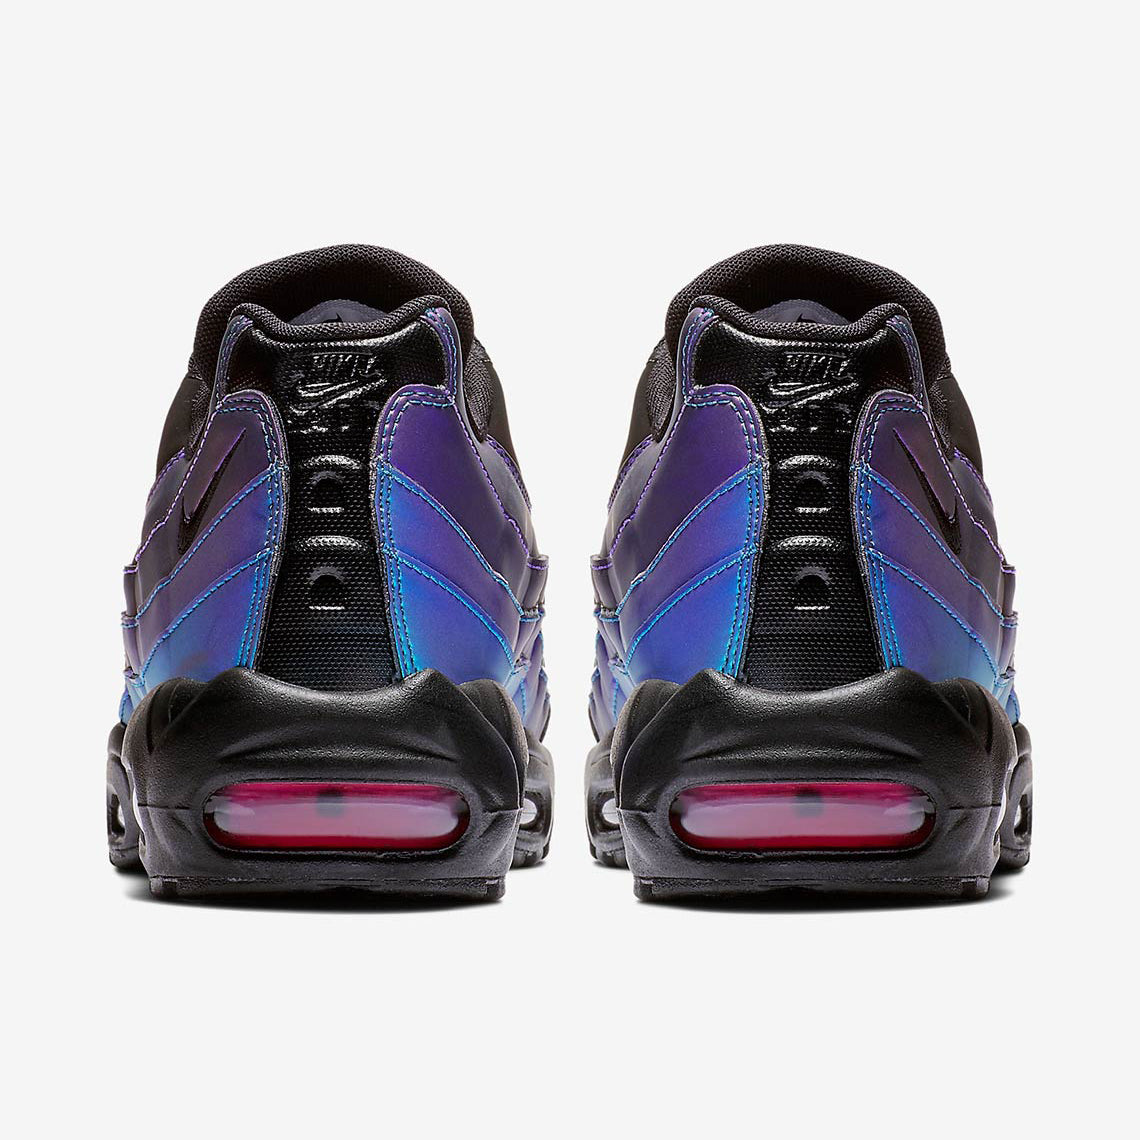 outlet store 3a943 bf721 NIKE AIR MAX 95 PRM (538416-021) Throwback Future Pack